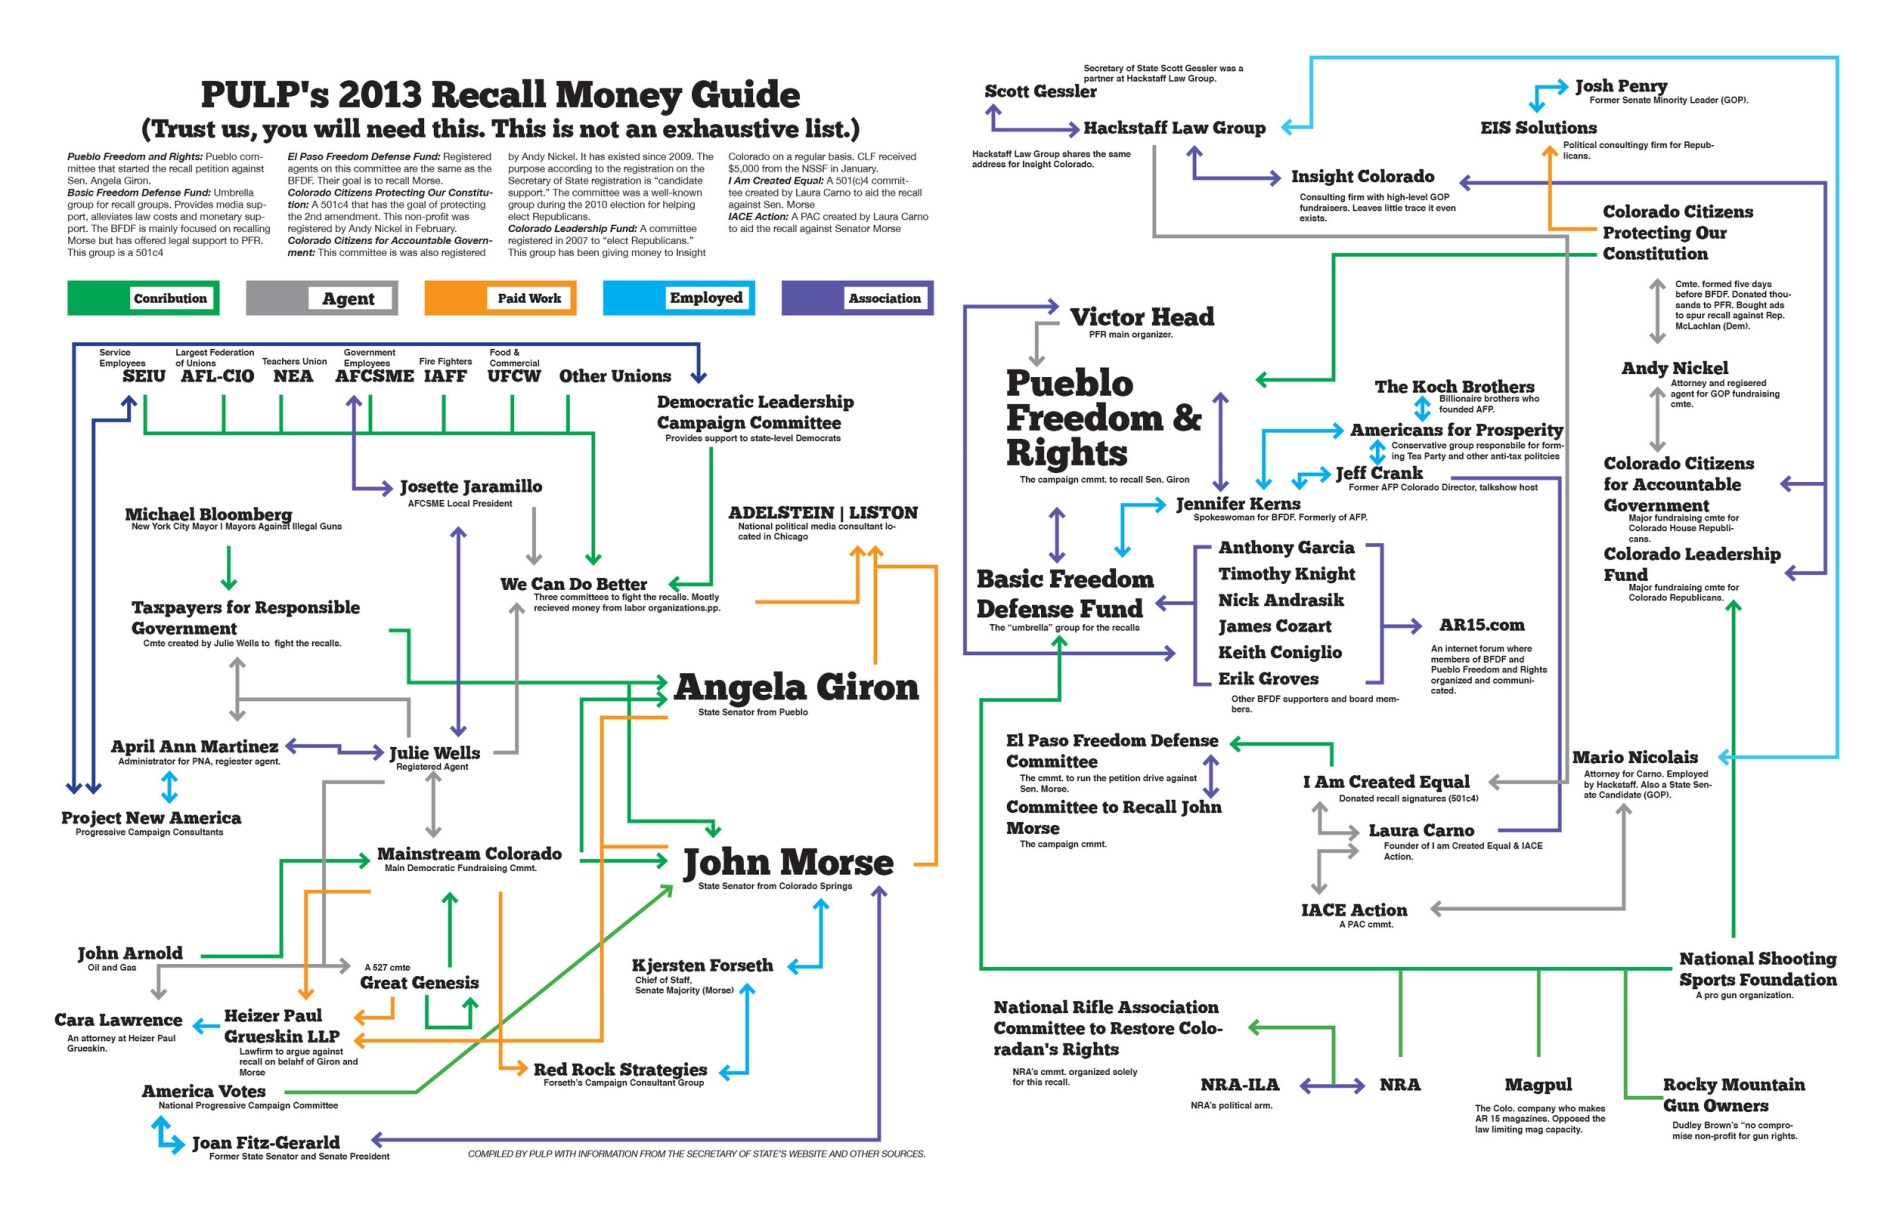 Tracking the connections and links is nearly impossible but PULP's investigation into the recall money shows the fundraising apparatus for both sides. View a hi-res PDF of the chart.